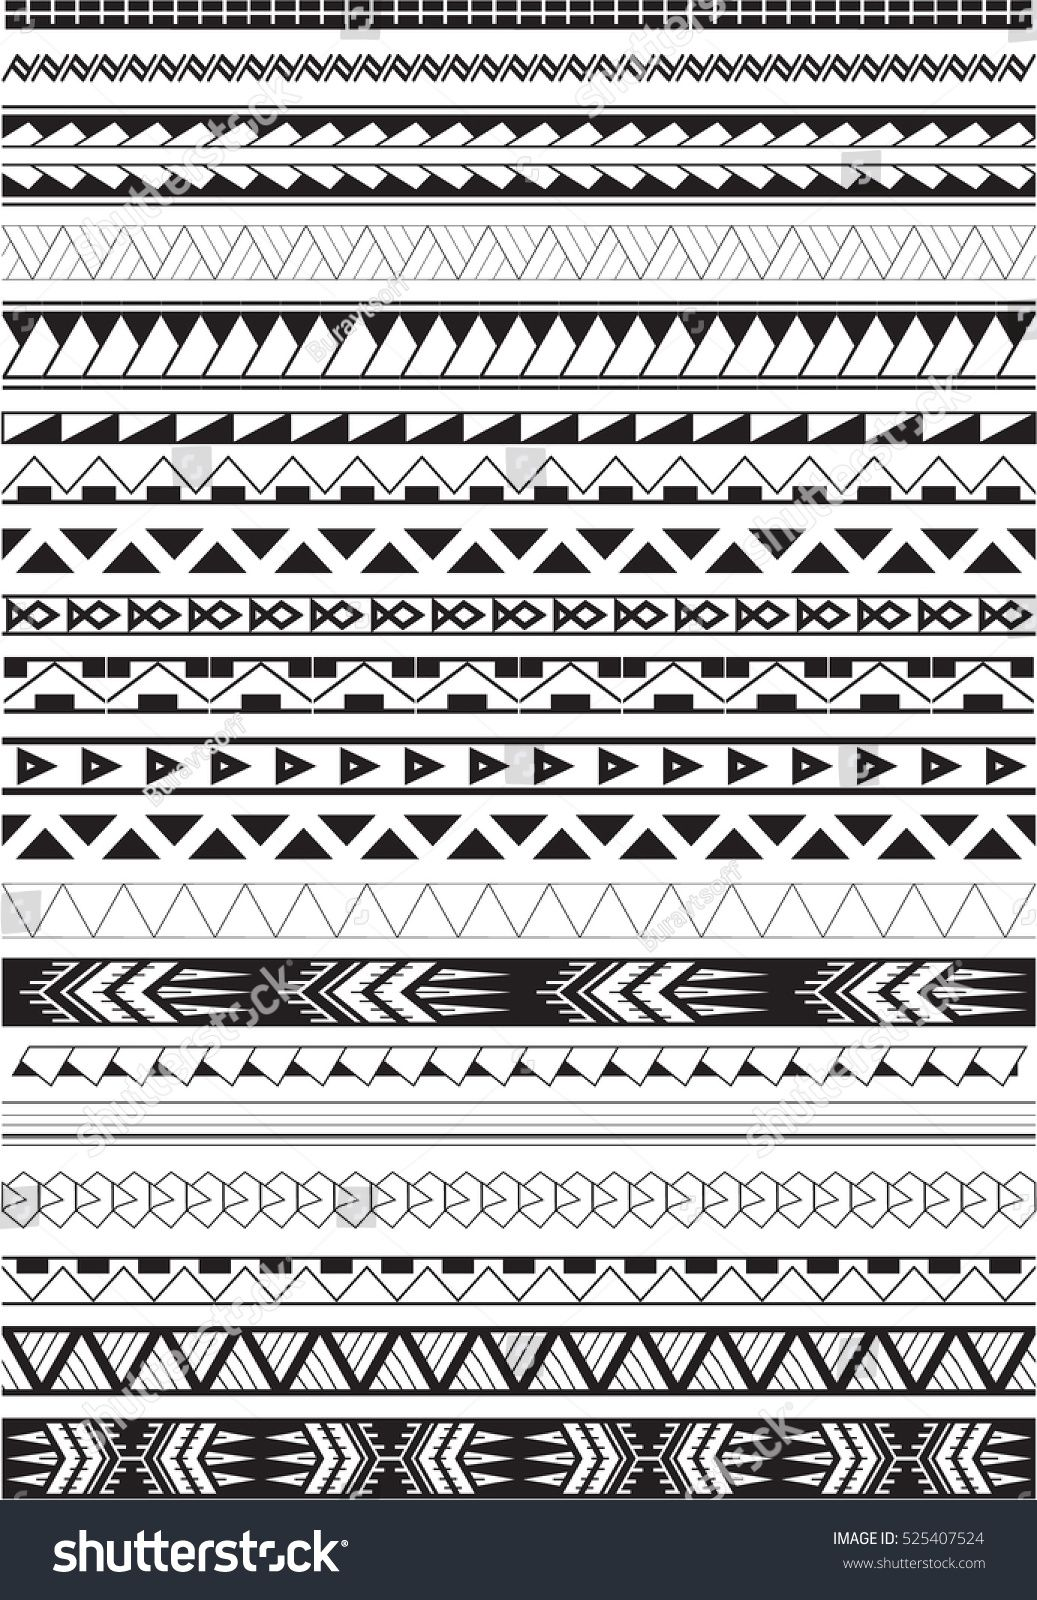 Immagine vettoriale a tema maori brushes on white (royalty free) 525407524